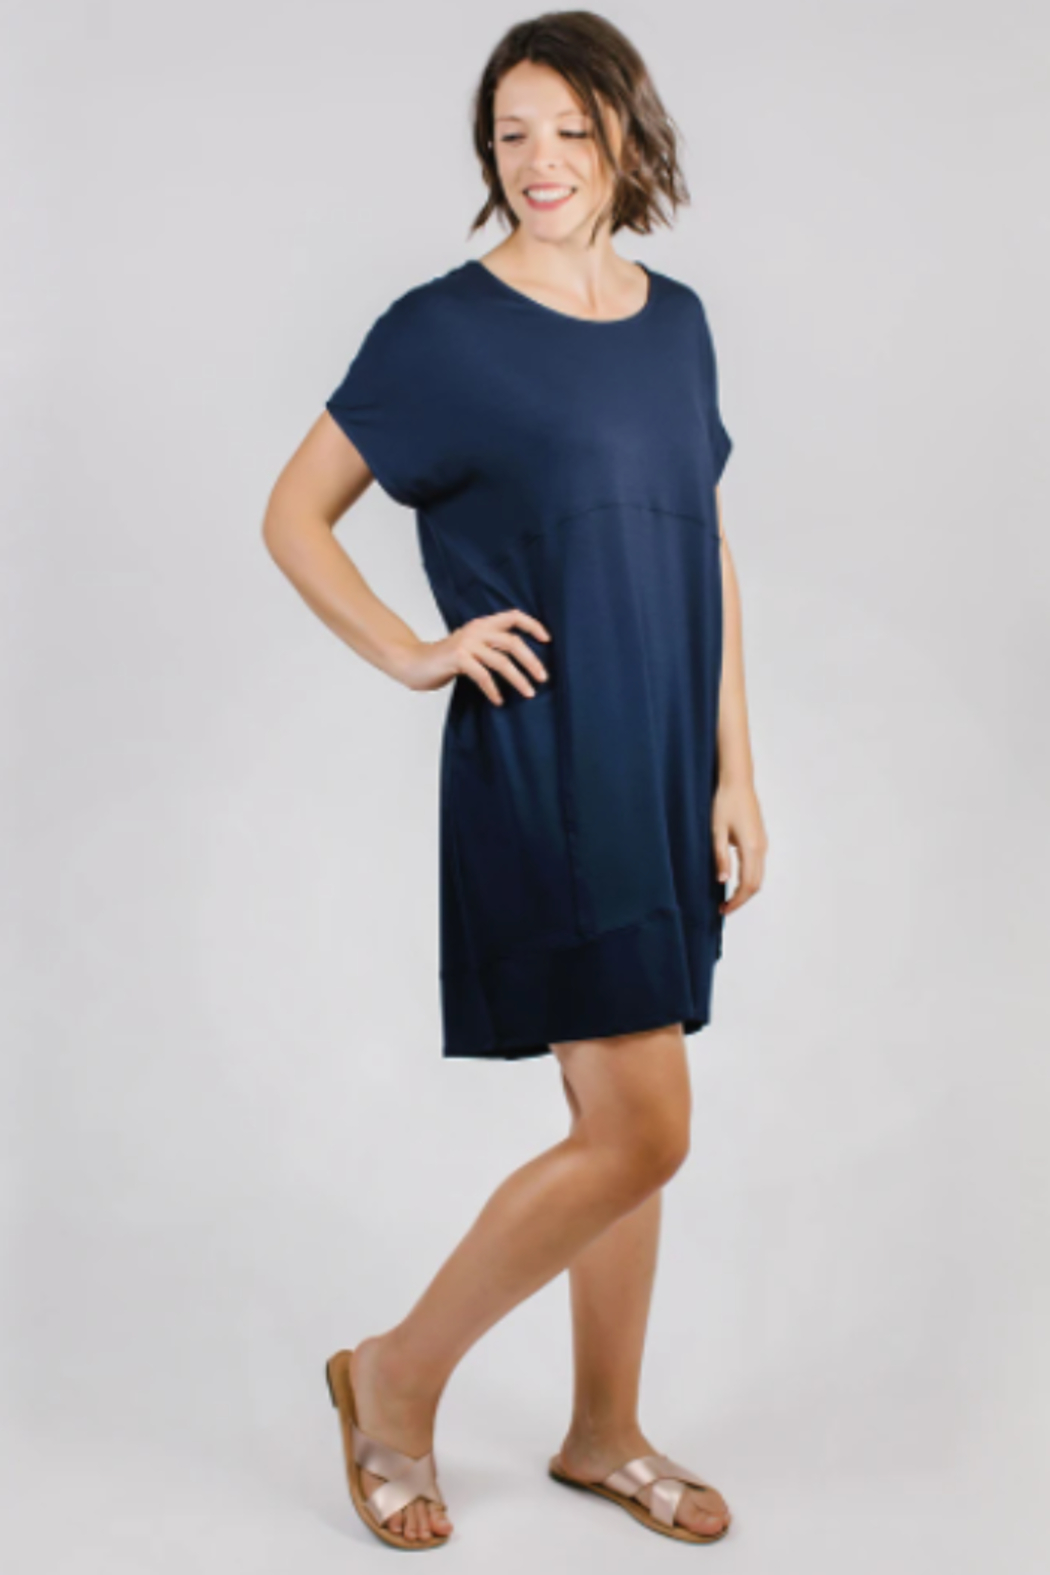 Shannon Passero Sydney Dress - Main Image